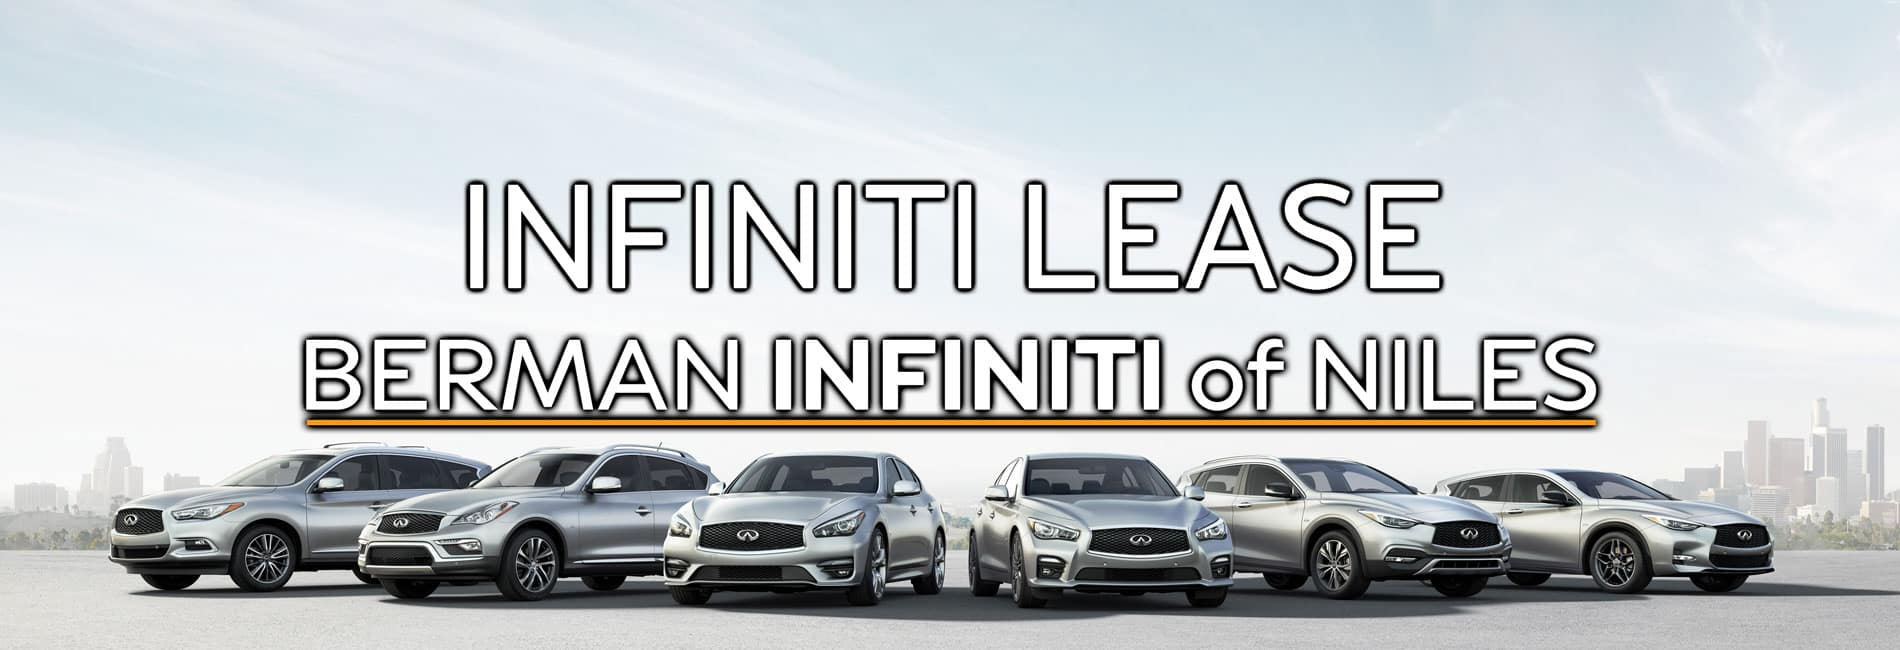 INFINITI Lease at Berman INFINITI of Niles